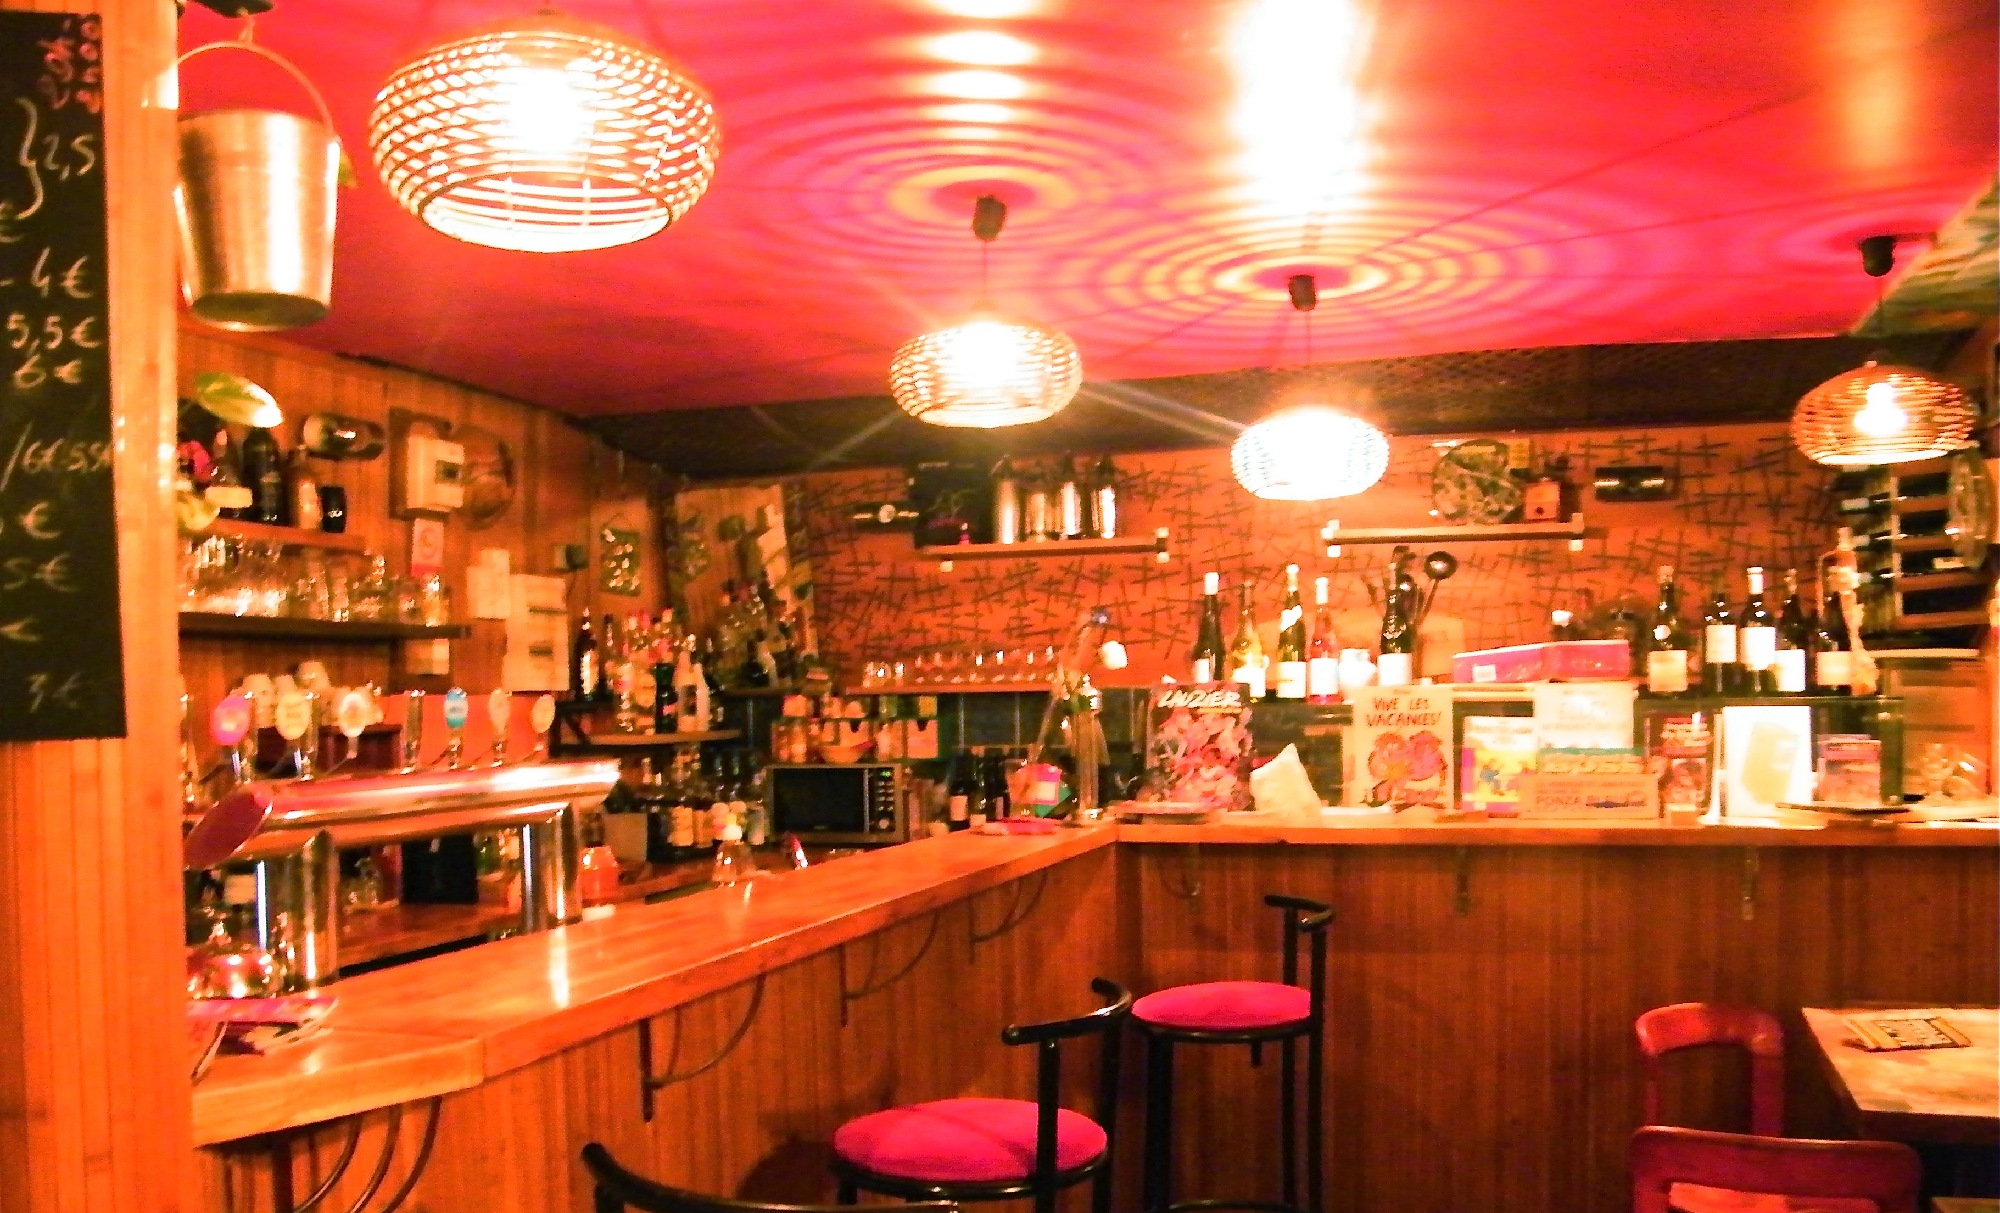 Jazz clubs and bars time out paris for Bar dans une maison